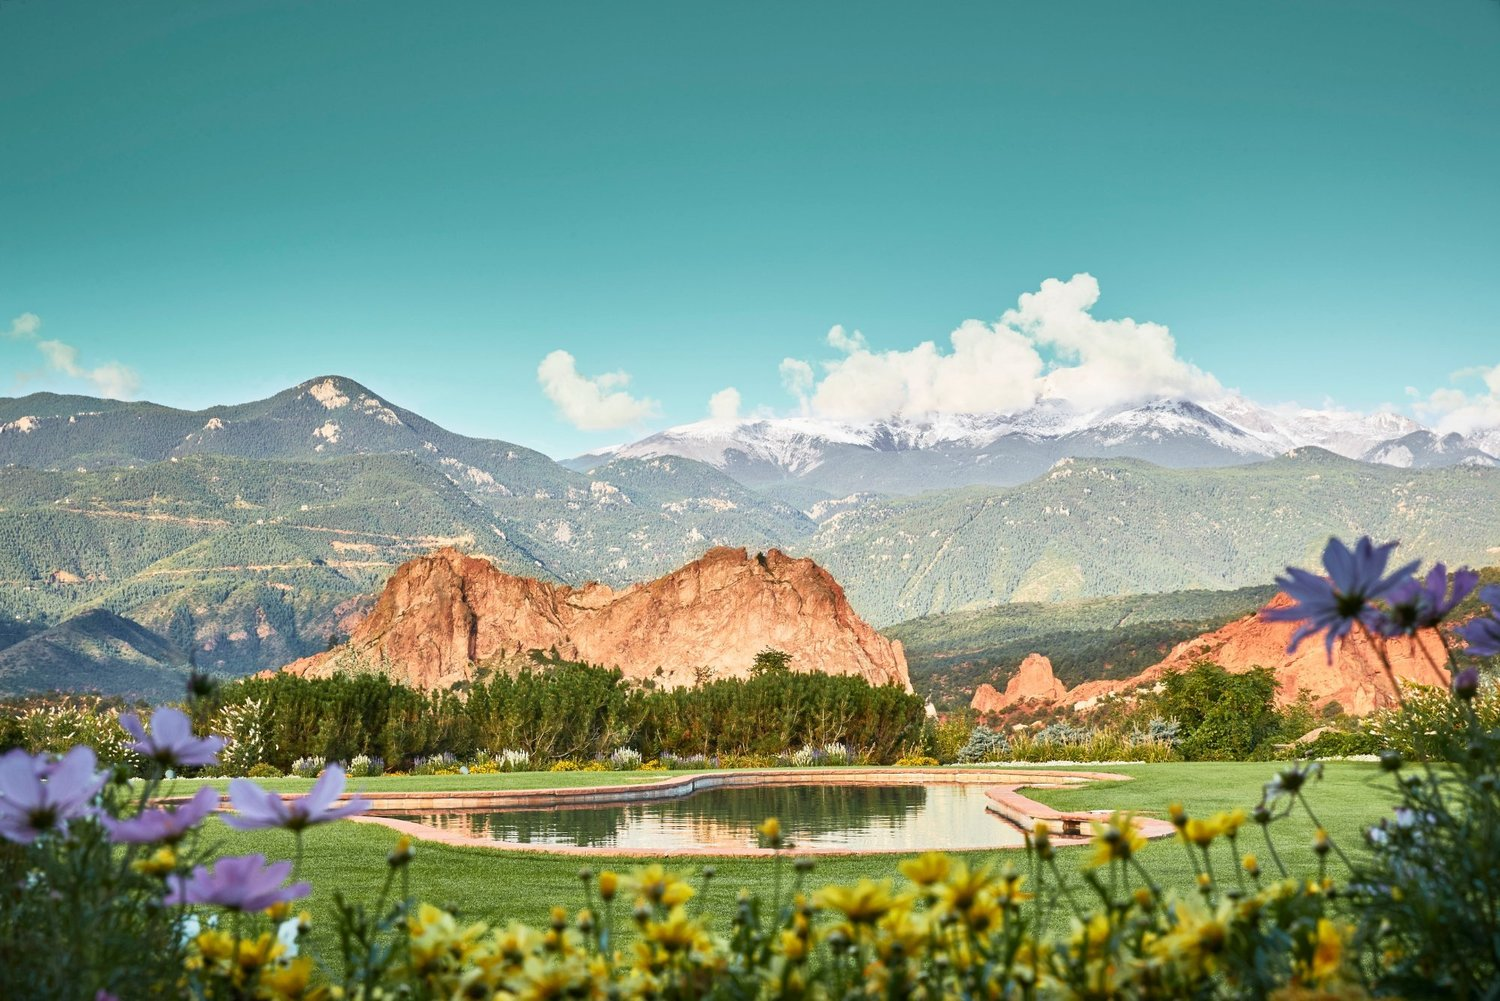 Garden Of The Gods Club Resort Colorado Springs Co Jobs Hospitality Online